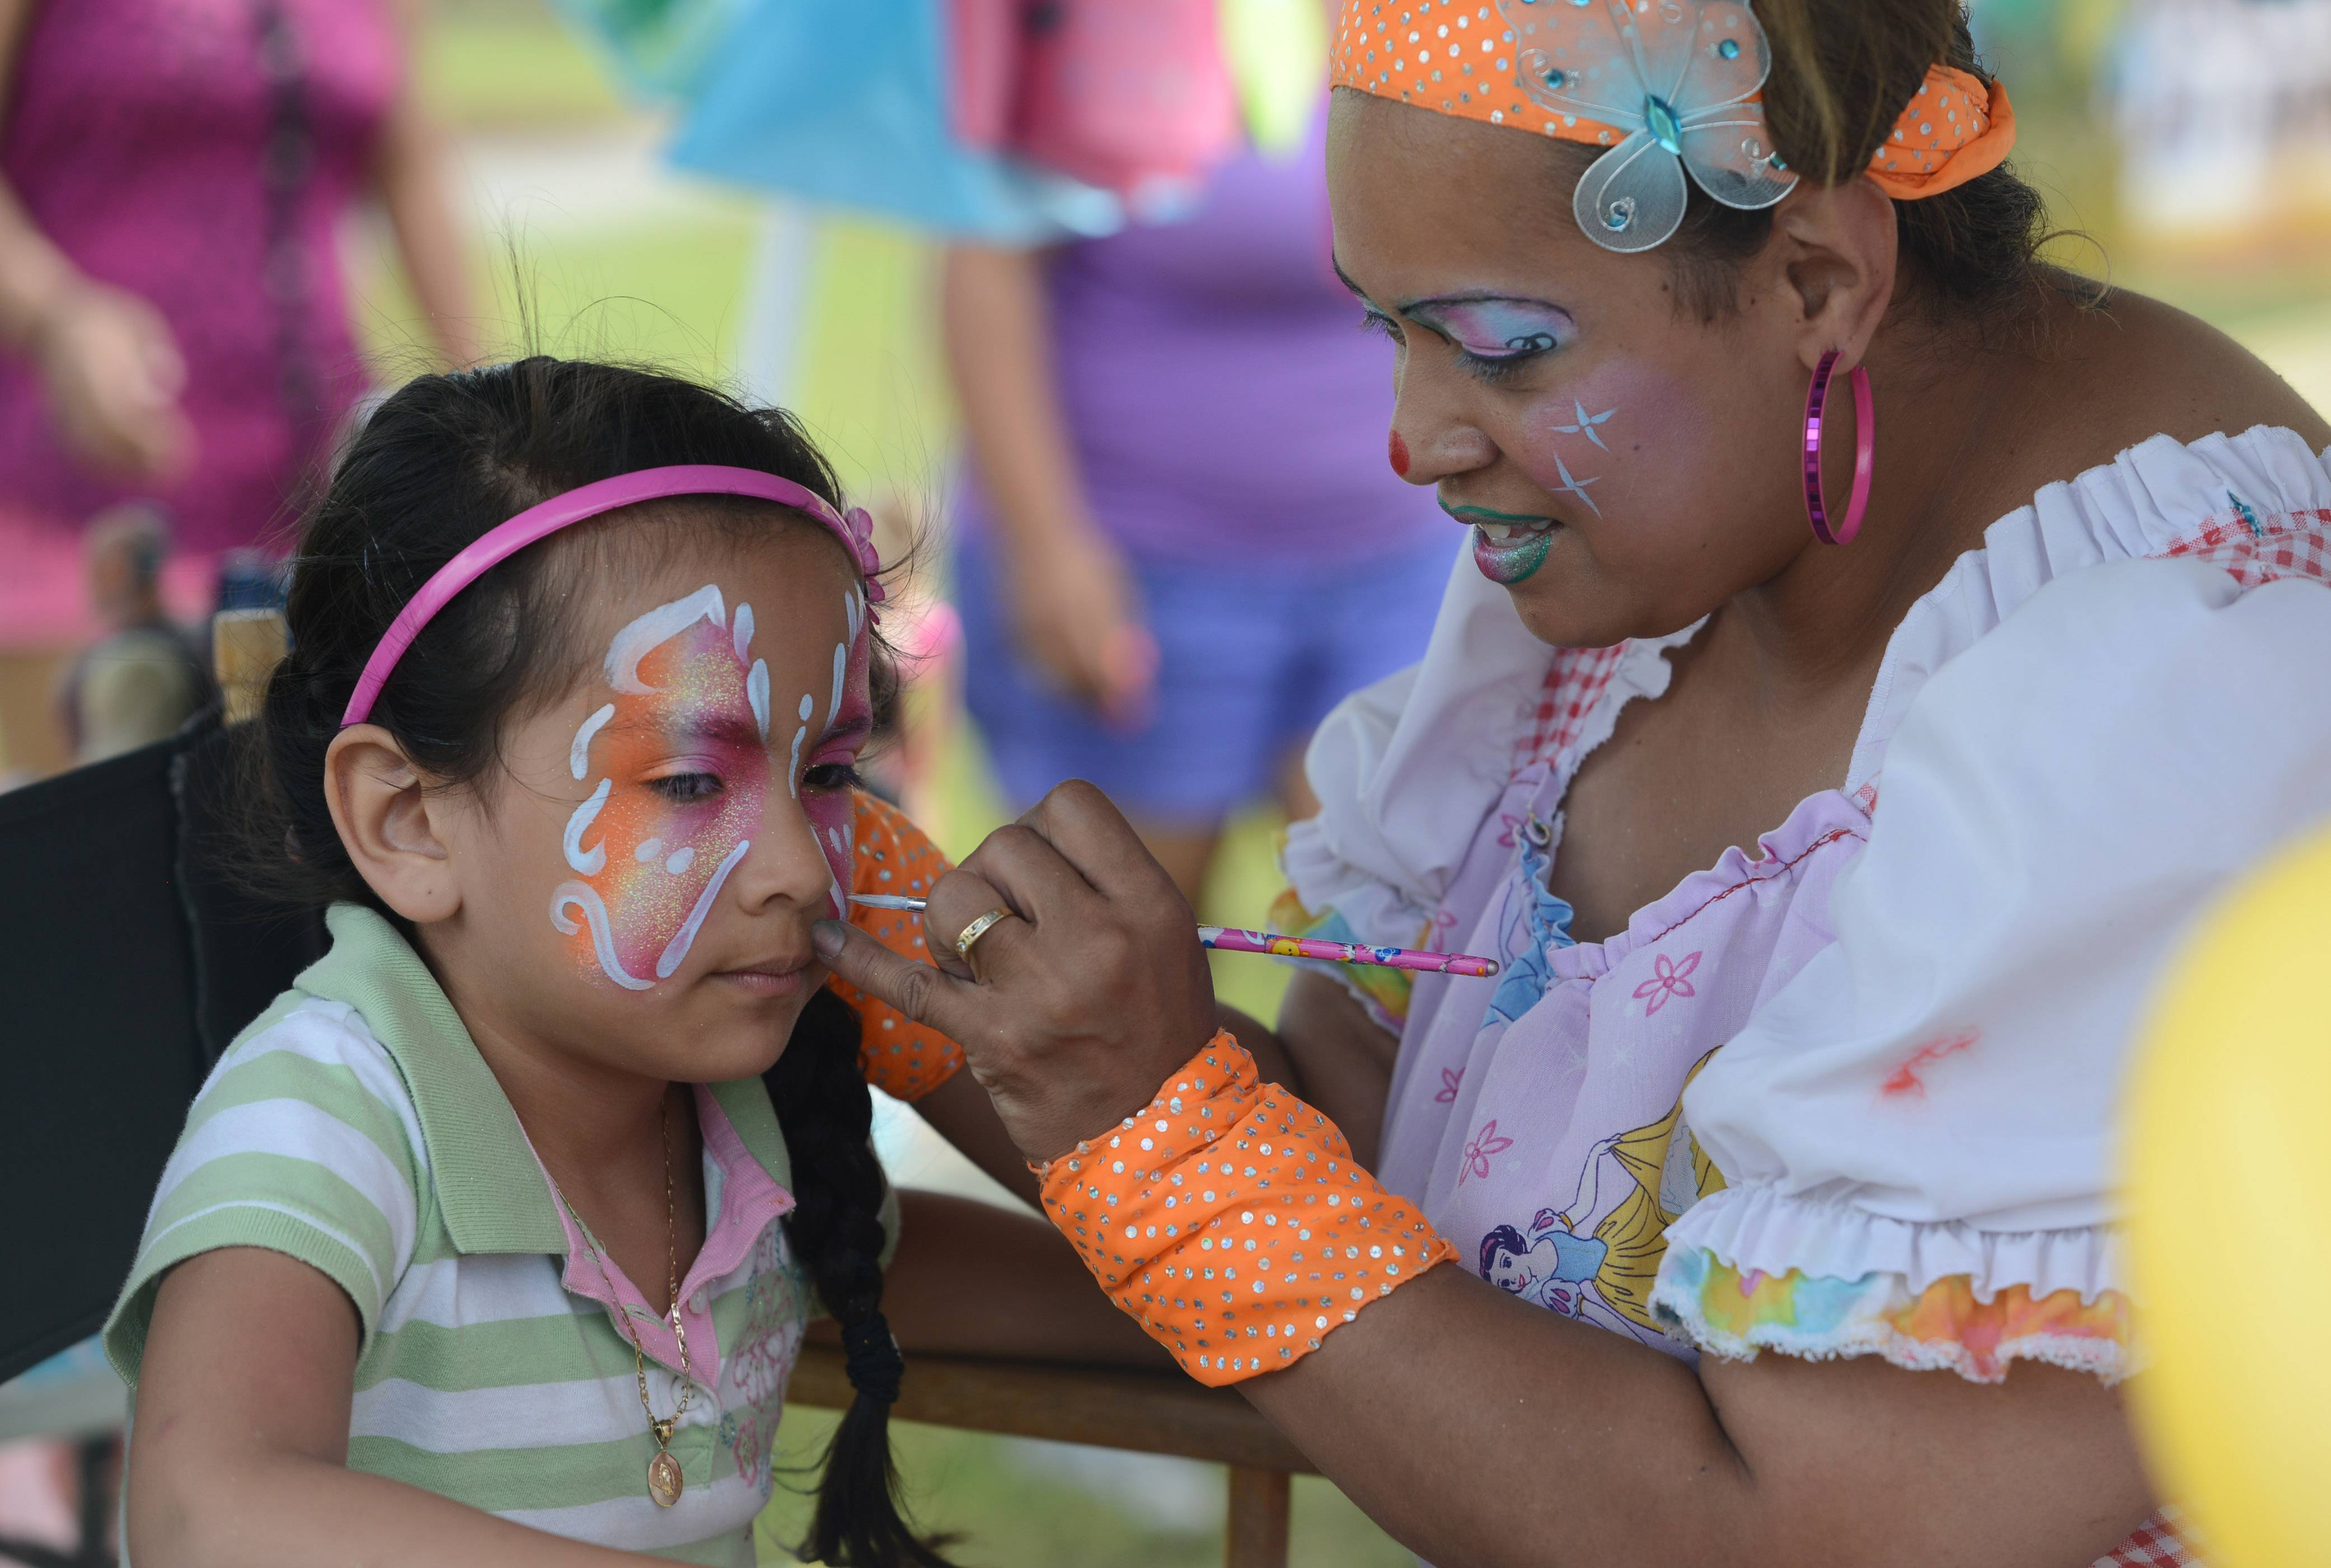 Pixie the Clown face paints children at last year's BeachFest celebration at the Cultural & Civic Center in Round Lake Beach.